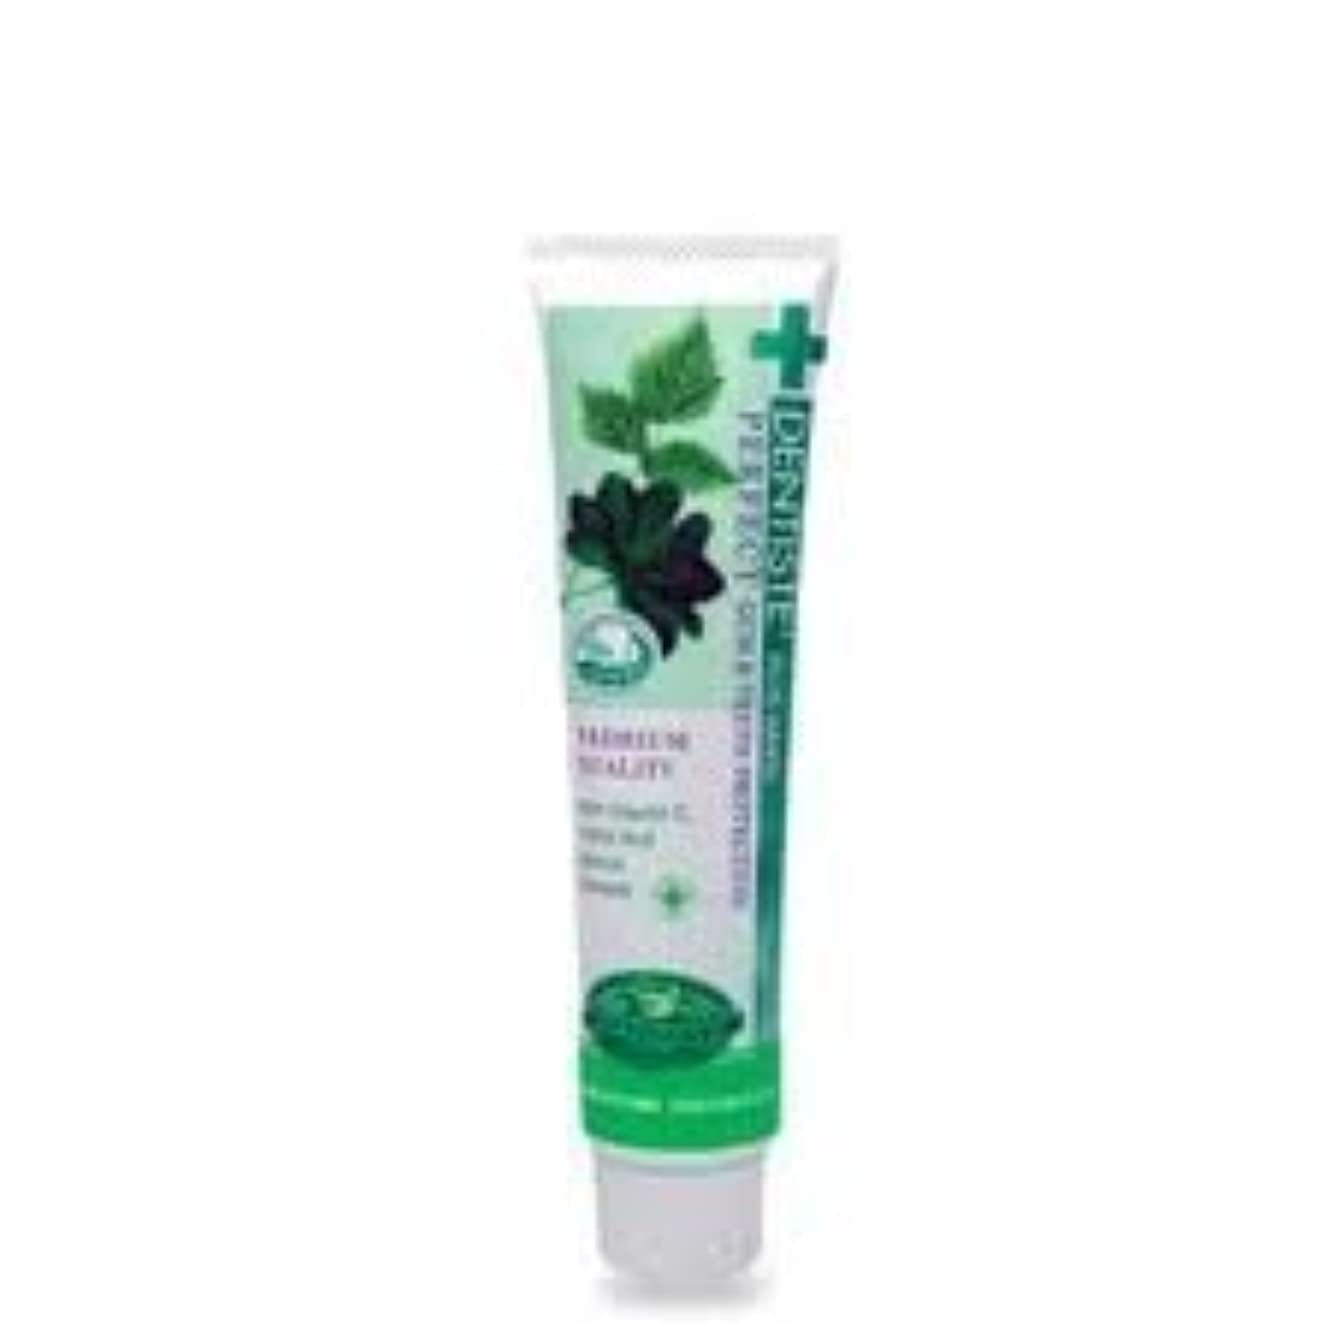 冬スムーズに規模Dentiste Night Time Active Whitening Toothpaste 100 G Thailand Product by Dentiste